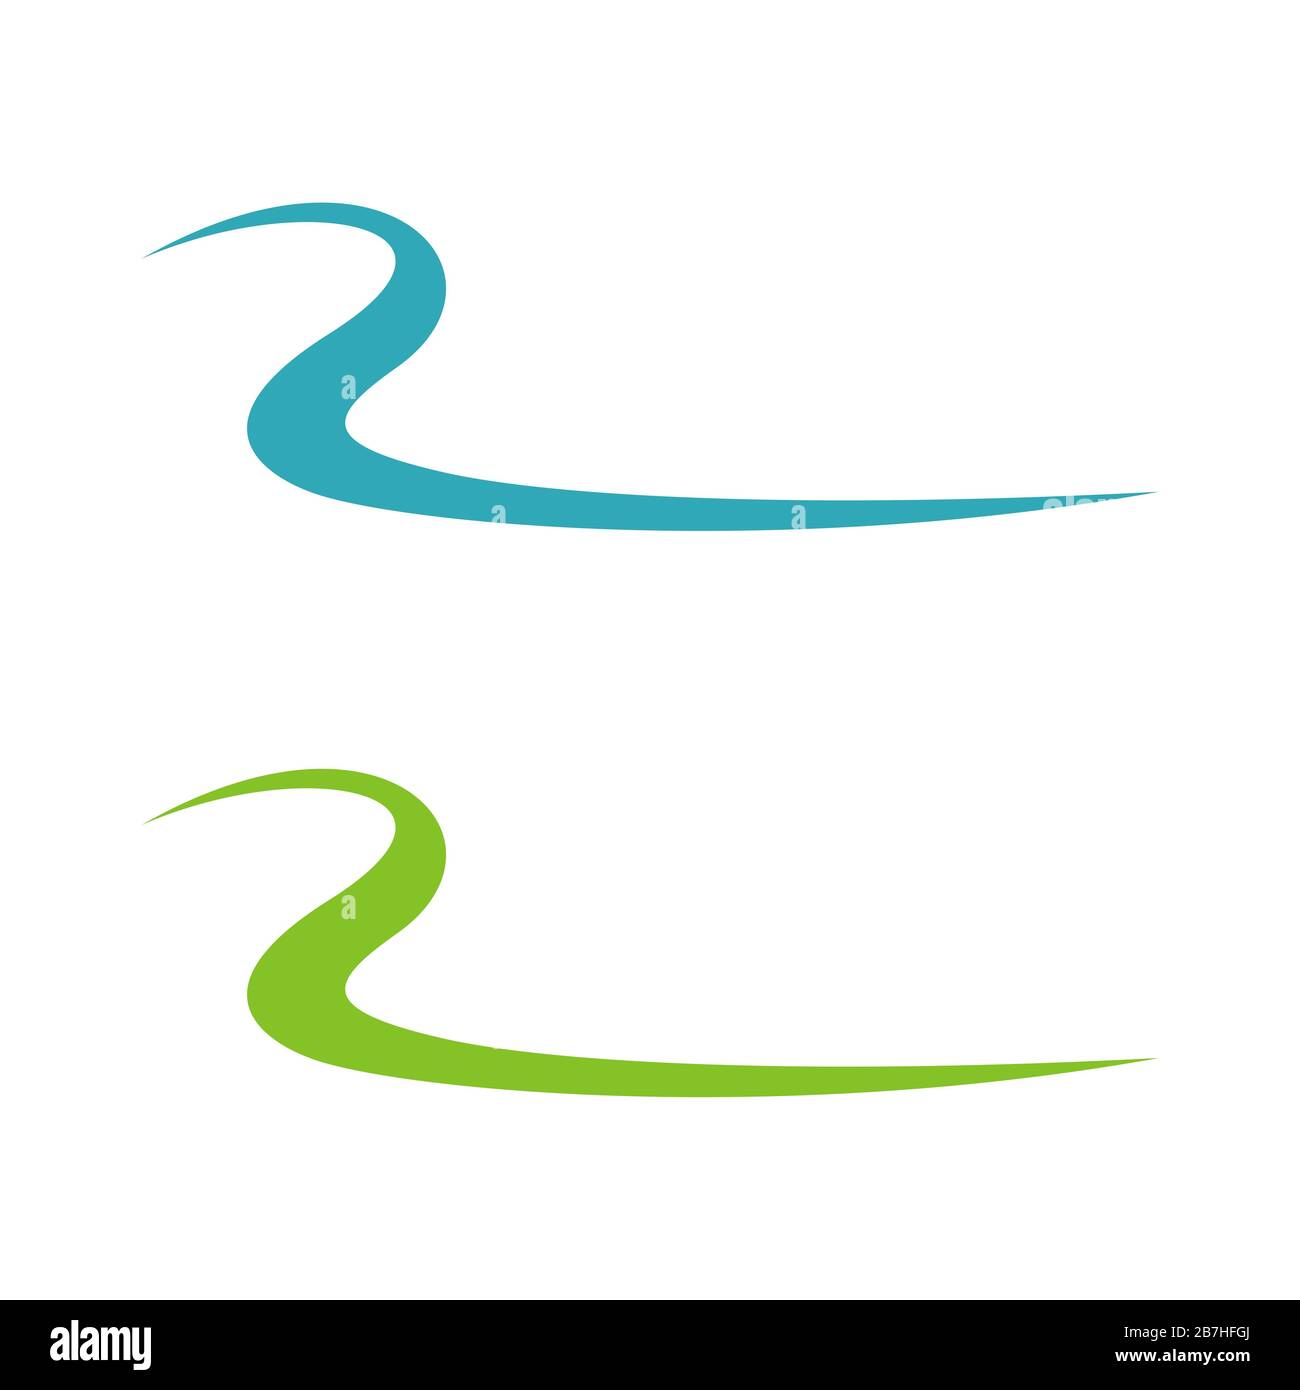 river logo vector high resolution stock photography and images alamy https www alamy com r letter swoosh river shape vector illustration logo template illustration design vector eps 10 image348895362 html